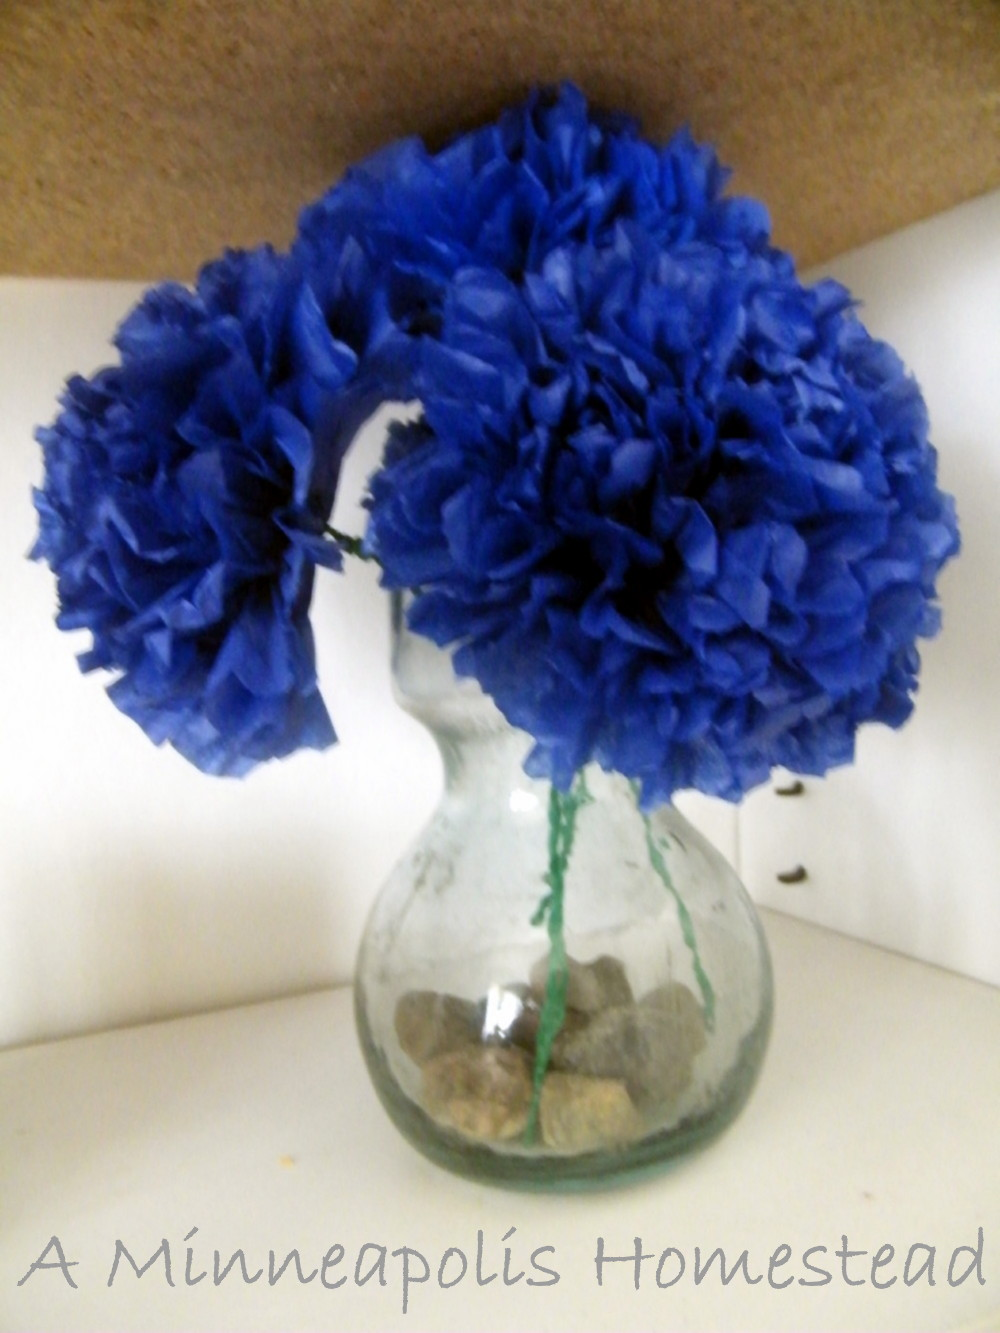 How to Make Paper Flowers, Tissue Flowers Tutorial - Oh You Crafty Gal